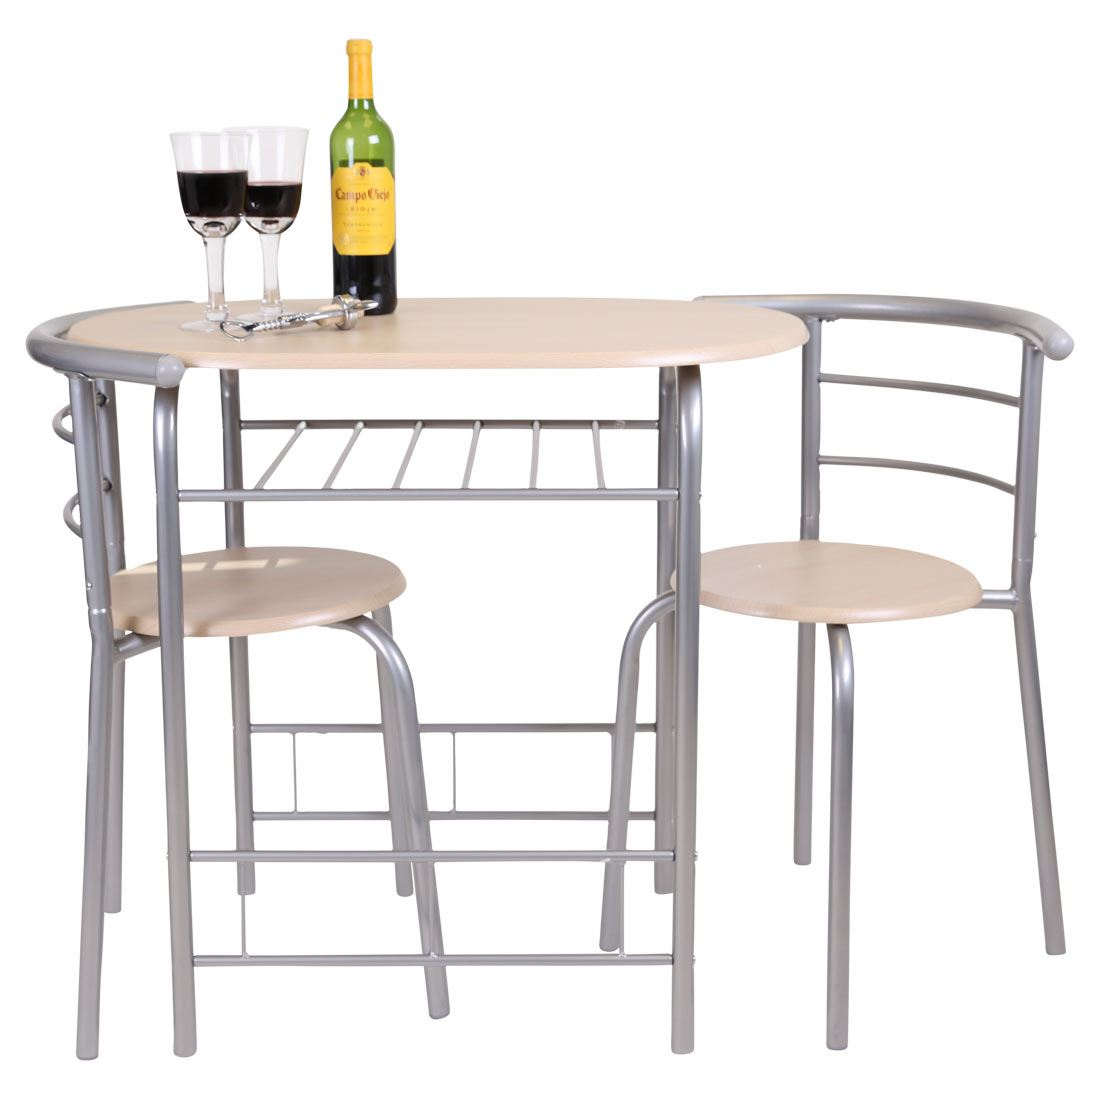 chicago 3 piece dining table and 2 chair set breakfast kitchen